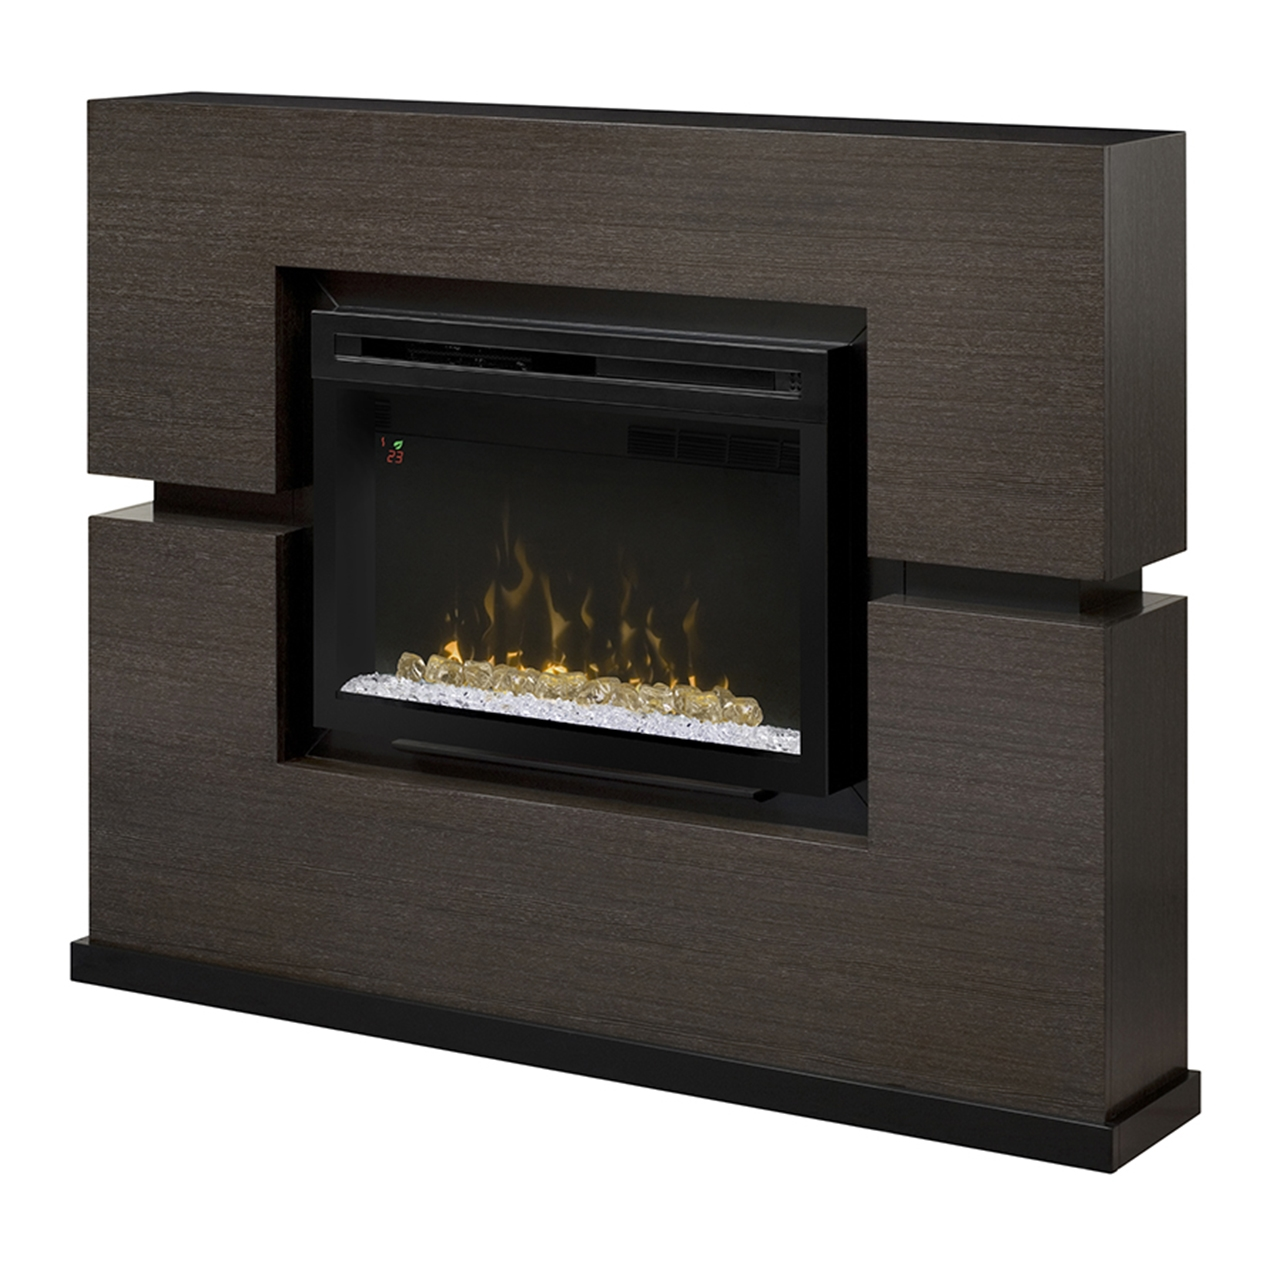 Linwood Fire Package Linwood Fire Package, Discount Hearth, Electric Fireplaces, Discount Hearth Products, Dimplex, Dimplex Products, Media Consoles, Dimplex Media Consoles